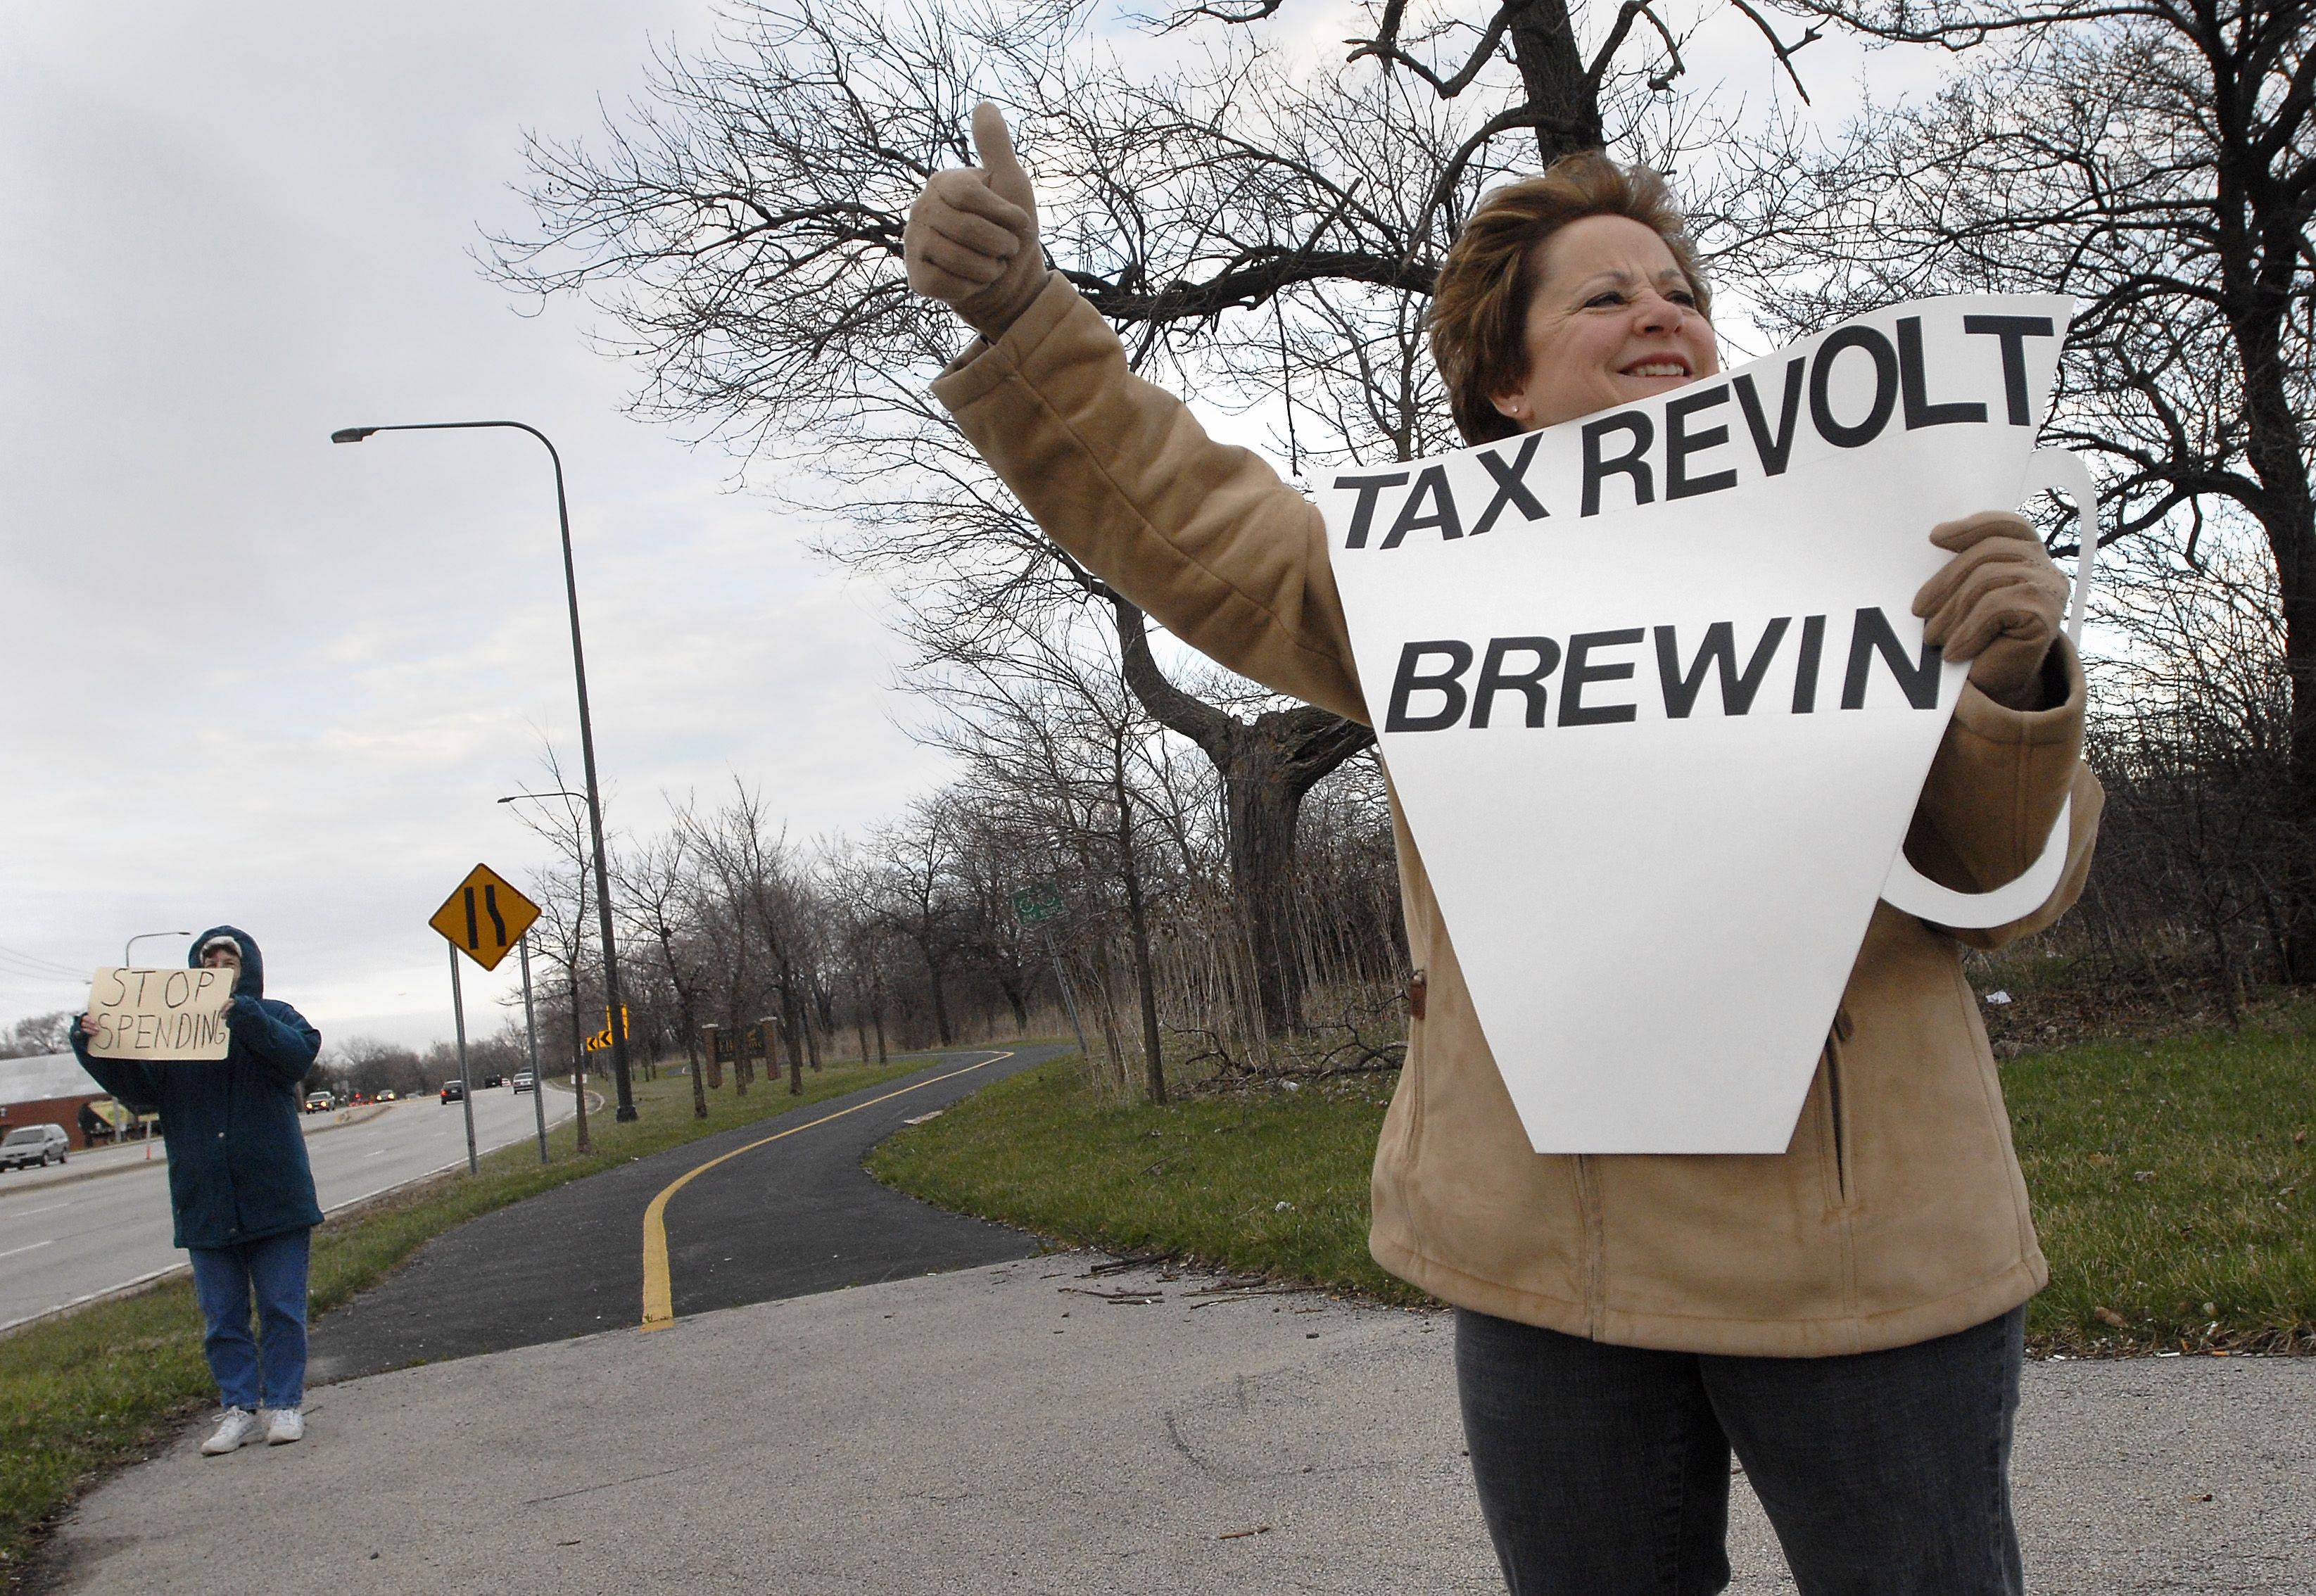 Bill Zars/bzars@dailyherald.com ¬ Sue Gorden of Elk Gove Village give a thumbs up to a honking car during a Tea Bag anti-tax protest at Higgins and Arlington Heights Road in Elk Grove Village. Gorden said she was protesting because a 1000 page budget was passed in 48 hours and no one could have had time to read it properly. She said she is also opposed to government funding of abortion and stem cell research.